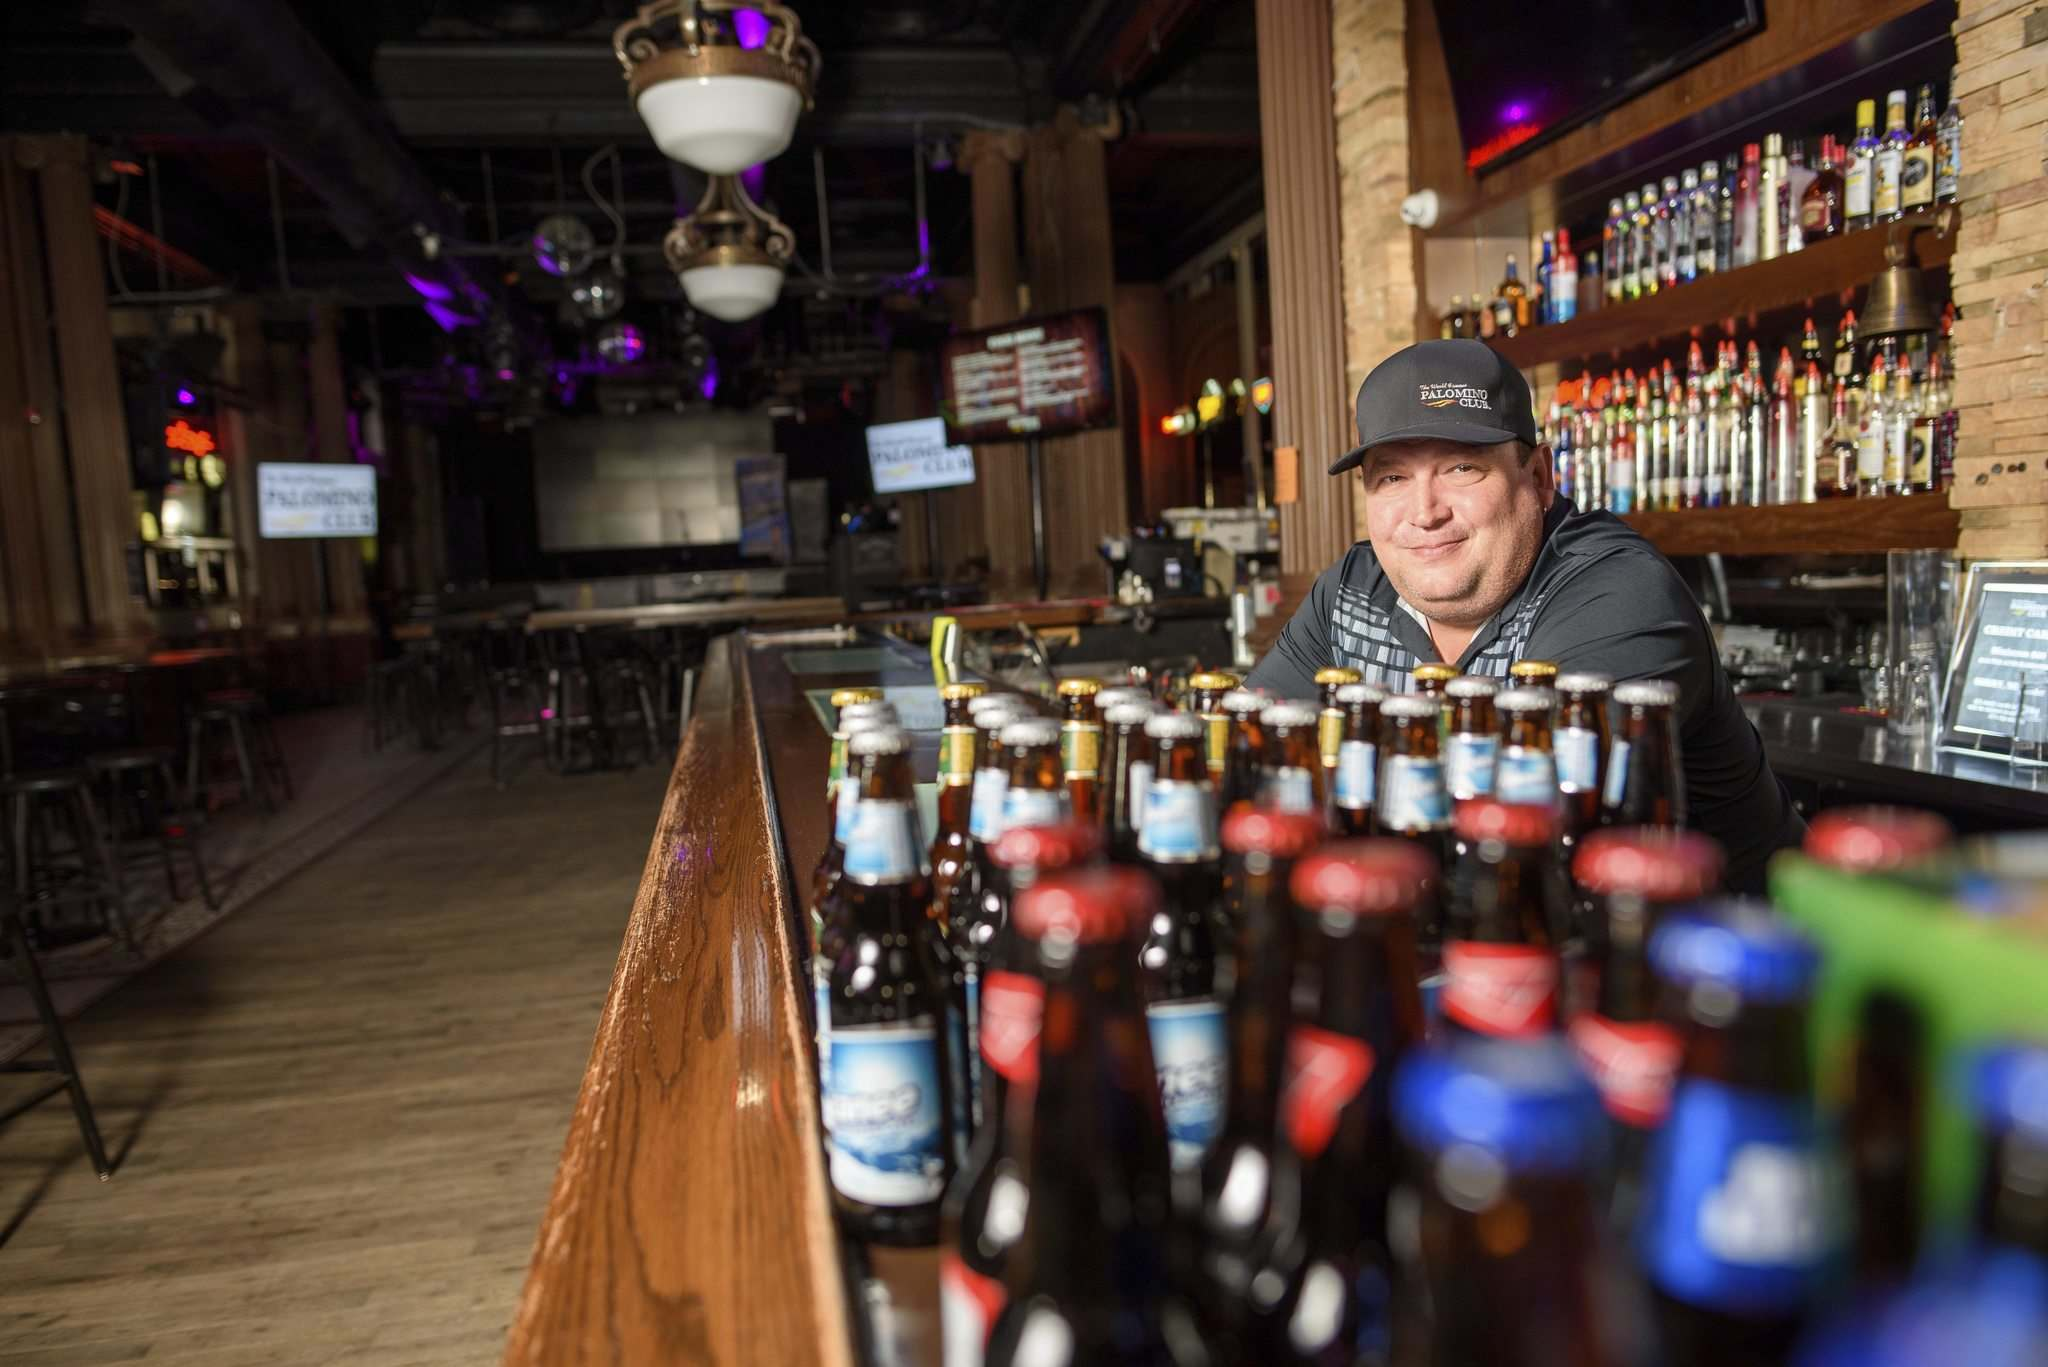 JESSE BOILY / WINNIPEG FREE PRESS</p><p>Christian Stringer, owner of Winnipeg's World Famous Palomino Club on Main Street. The nightclub reopened a couple of weeks ago and has taken steps to keep its customers safe.</p>